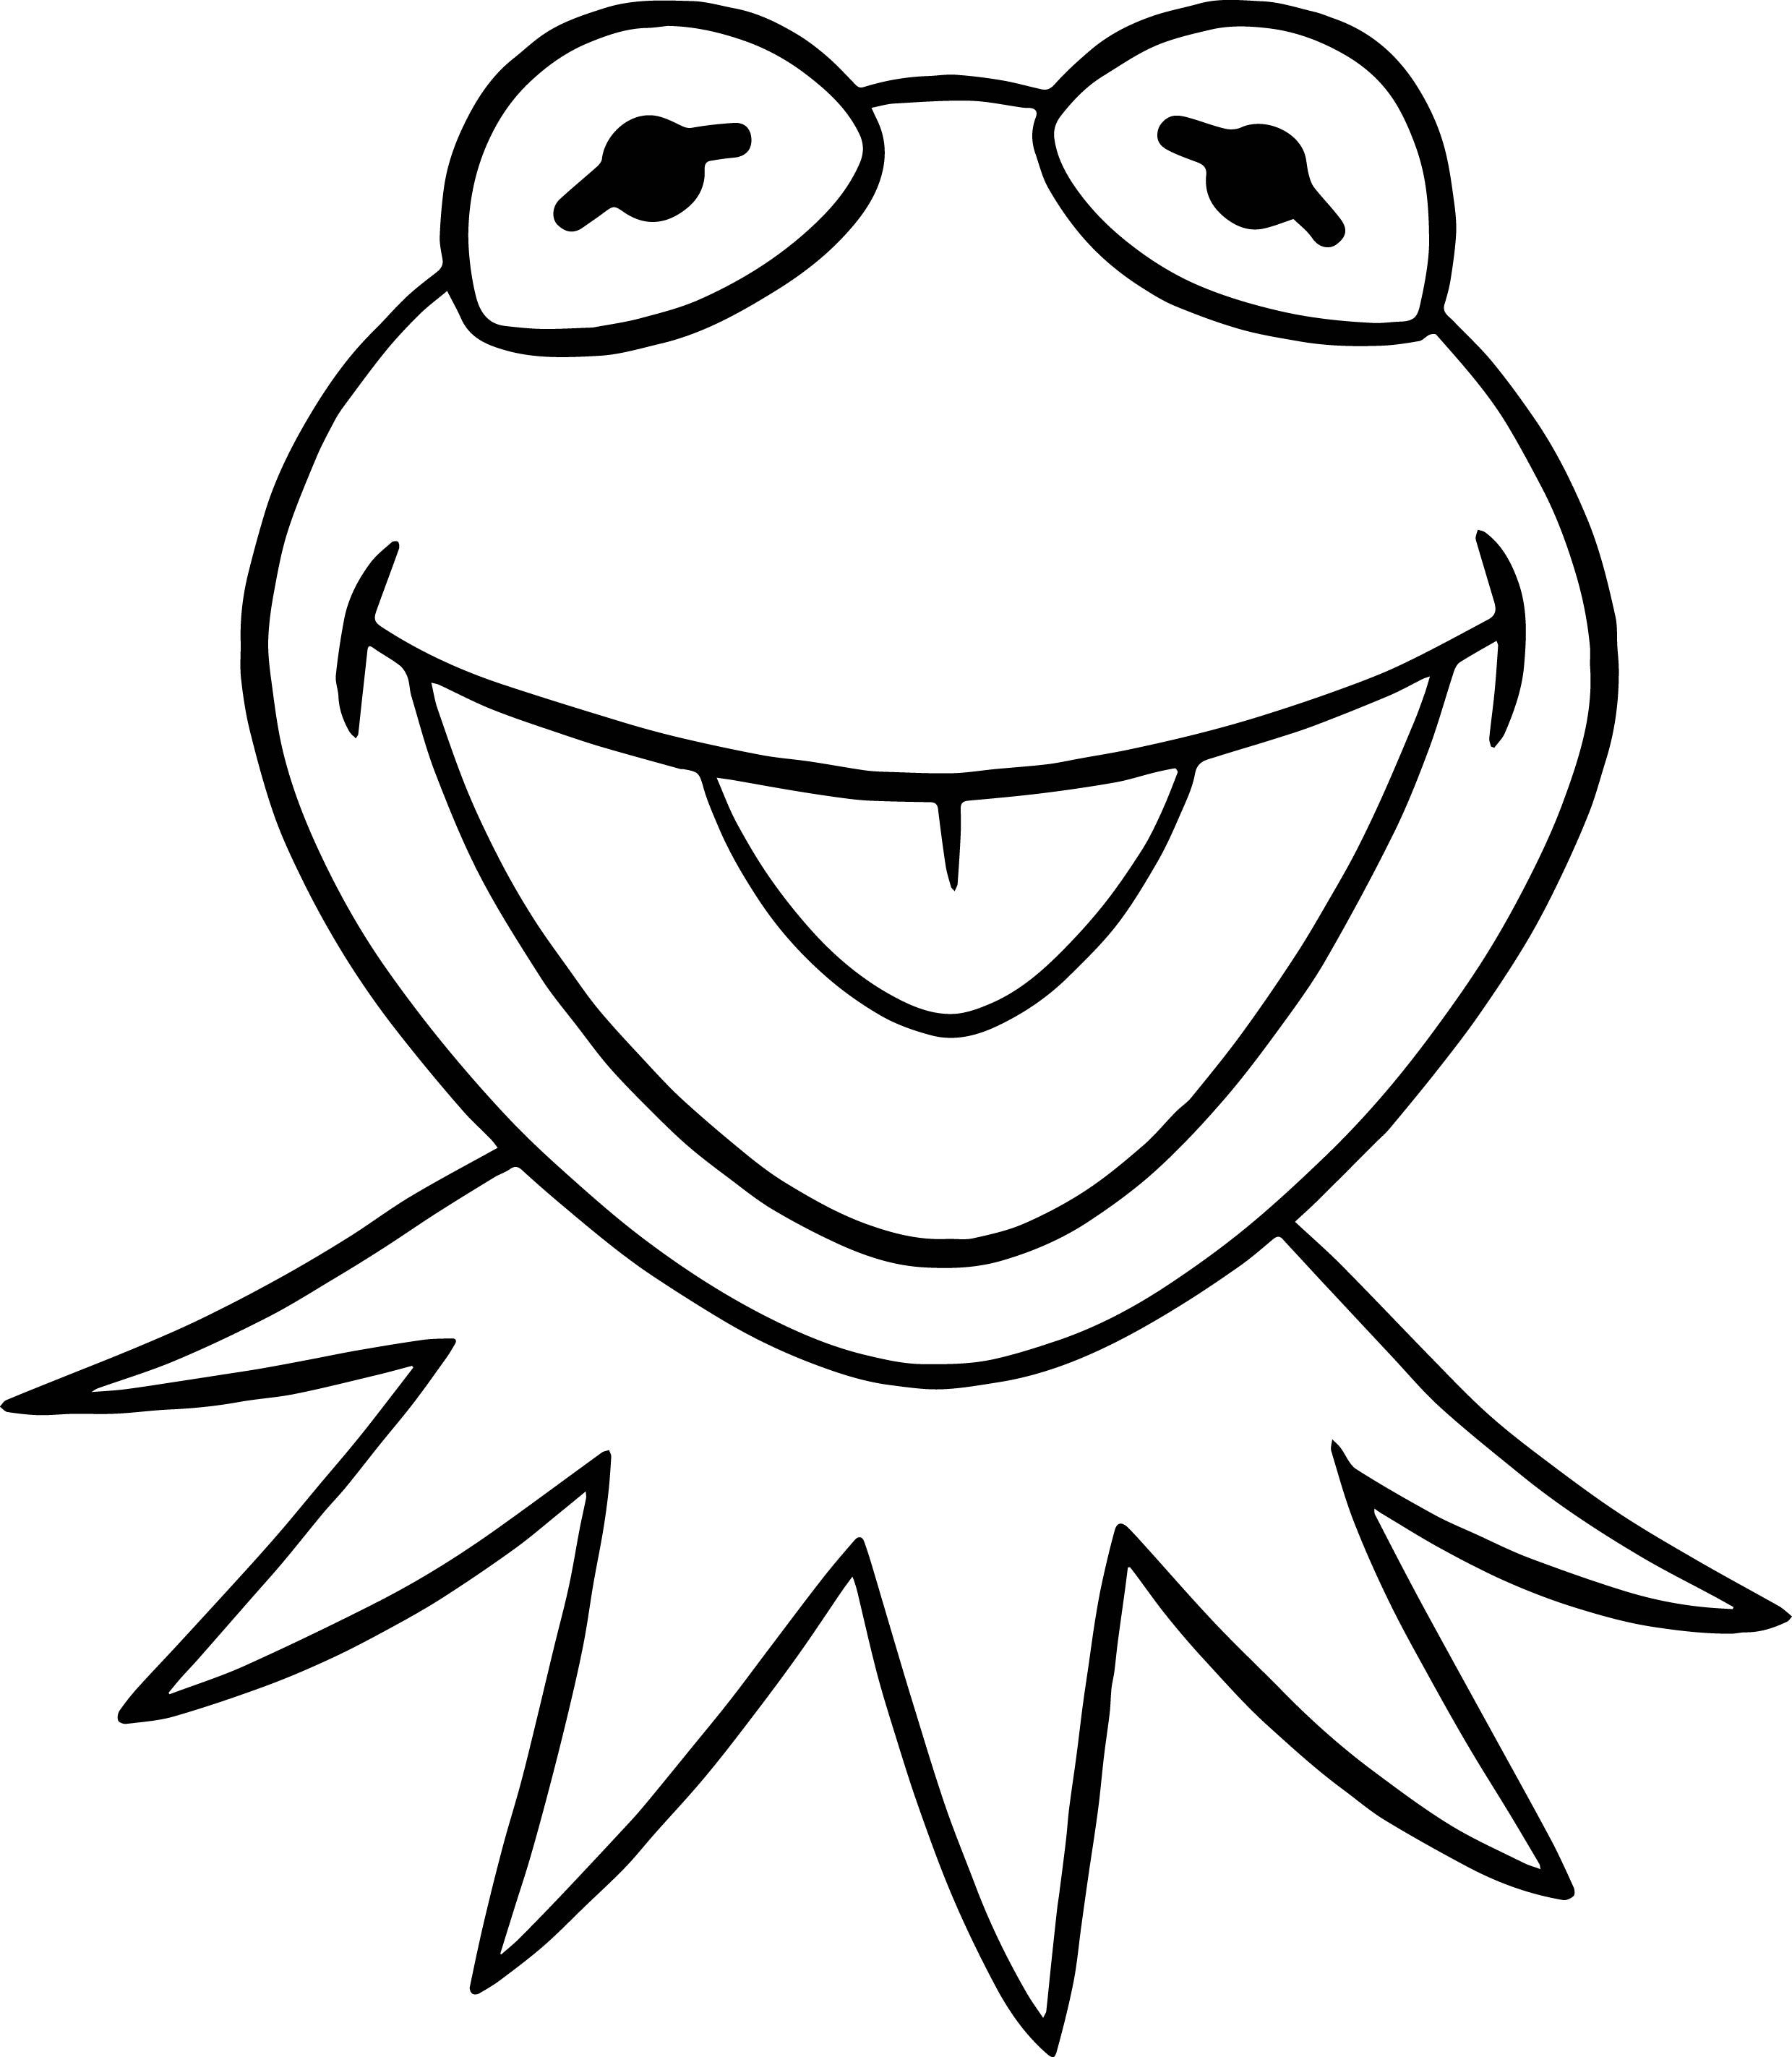 drawing kermit the frog kermit the frog by danyboy246 on deviantart drawing kermit frog the